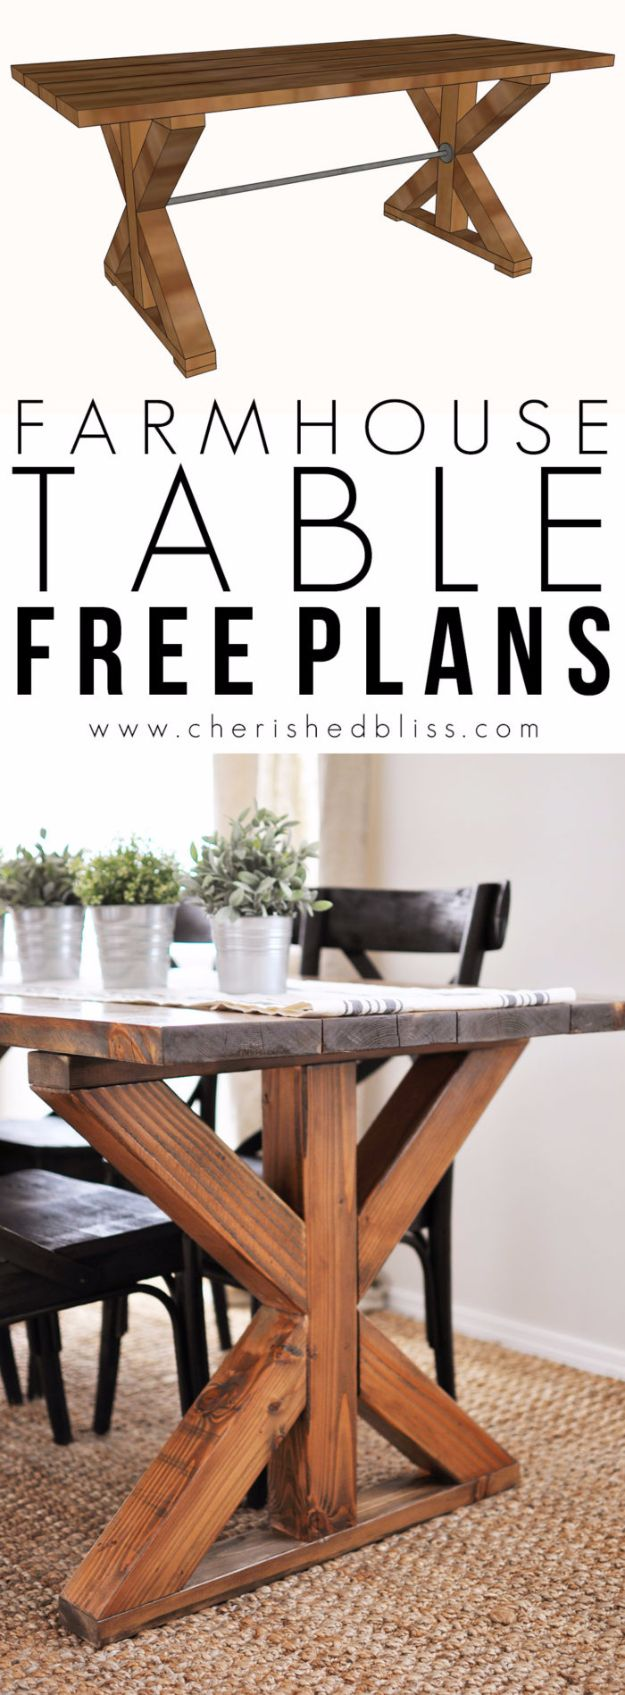 Photo of X Brace Farmhouse Table | Free Plans – Cherished Bliss